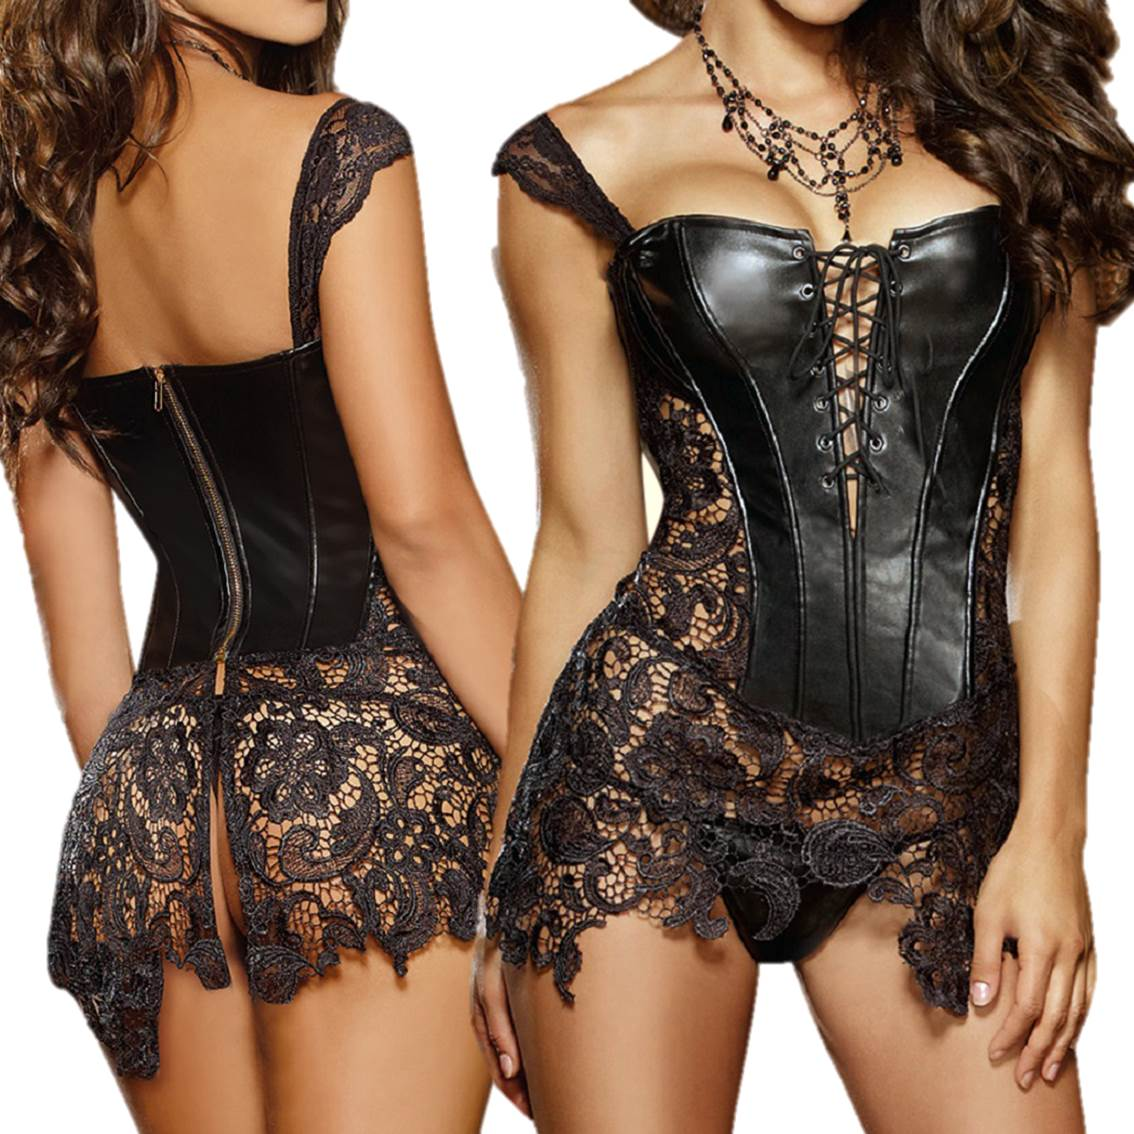 Visit Corsetdeal World's largest Corset Store, for wide range of Authentic Steel Boned Corset,Waist Training Corset,Steampunk Corset, Gothic Corset and more. Price guarantee by corsetdeal, if you find corset cheaper let us know we will offer 10% discount.